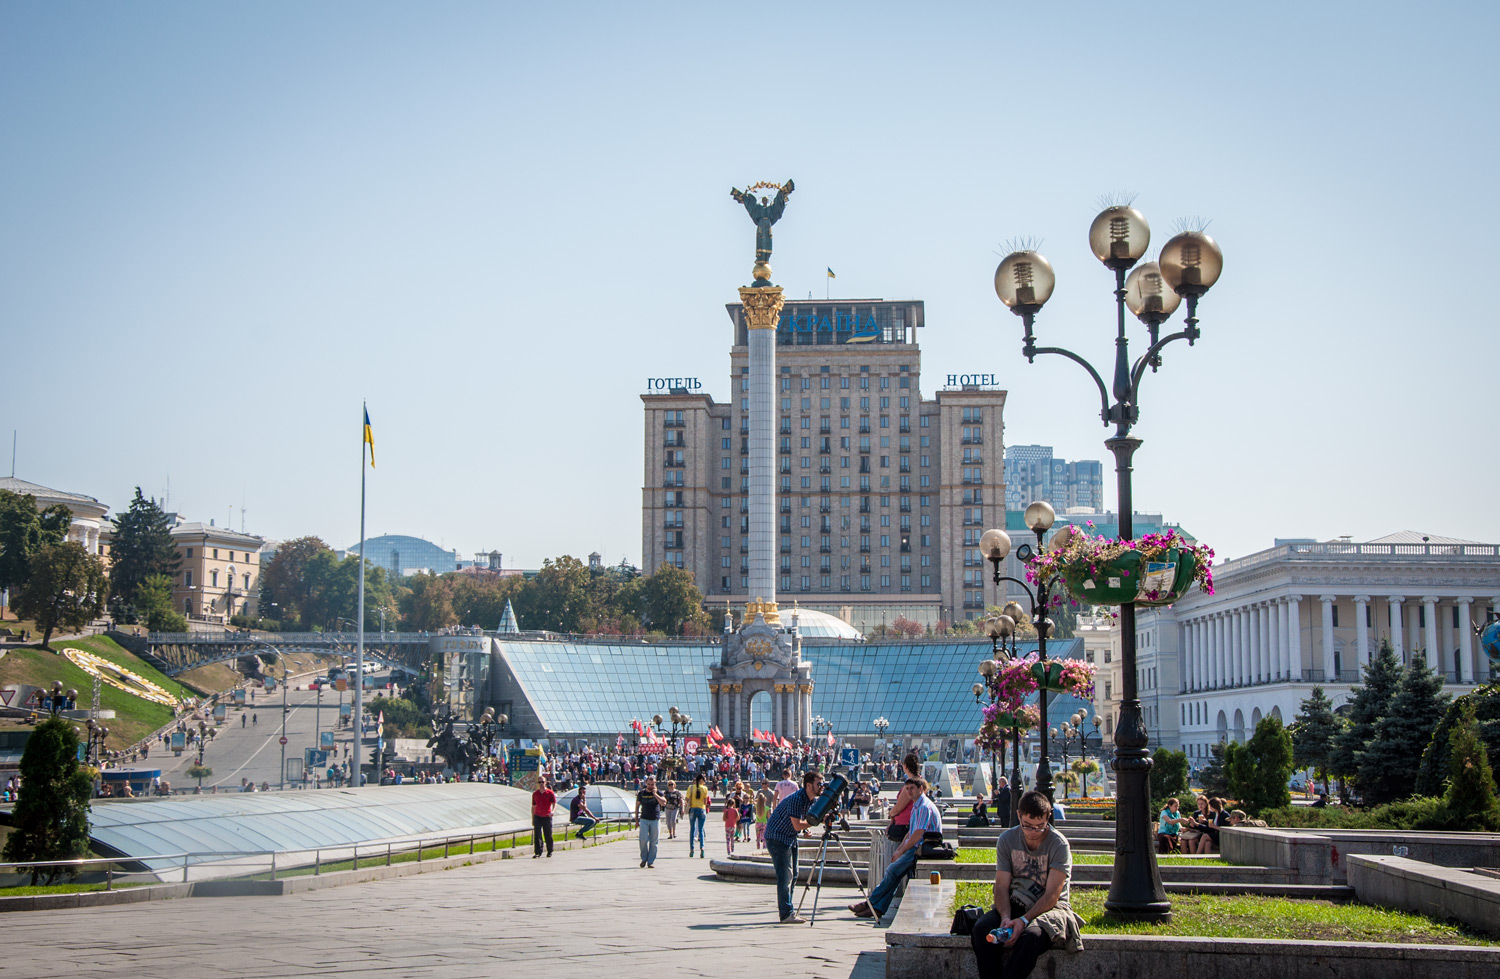 Urkaine Hotel and Maidan in Kiev (Kyiv)